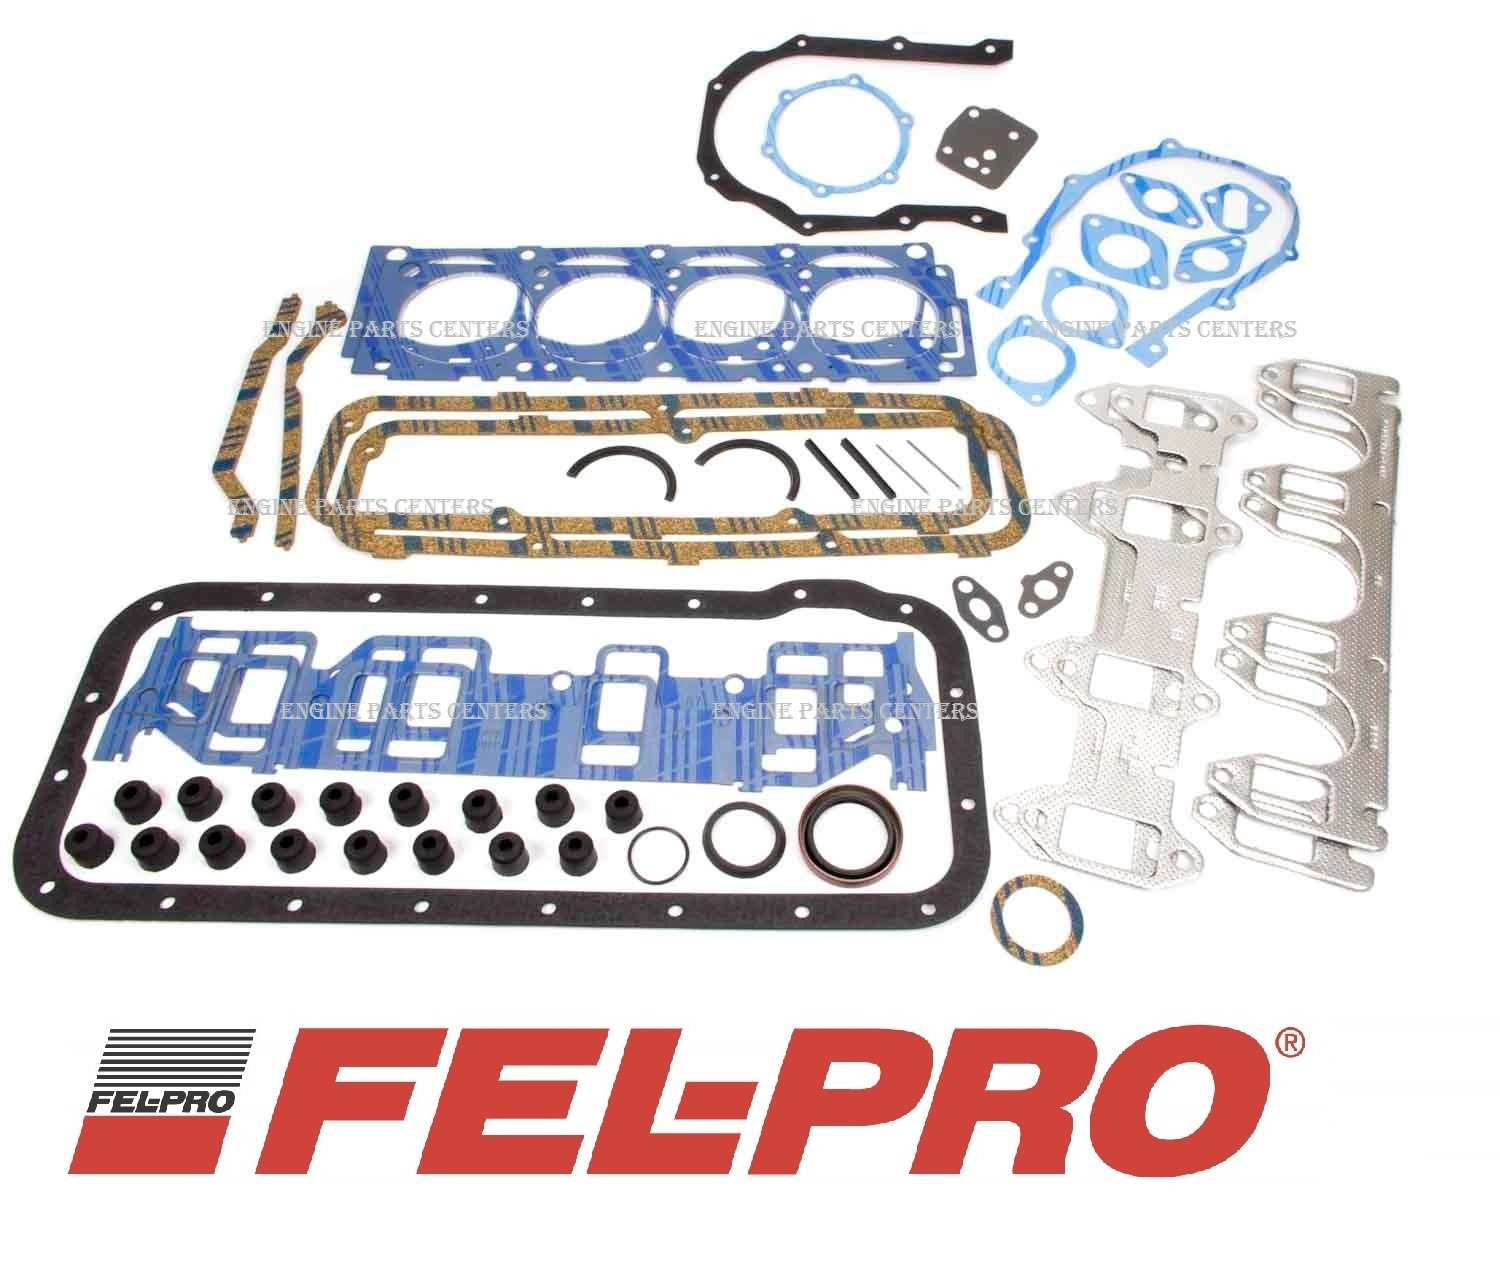 Amazon.com: Fel Pro Gasket Set Ford 390 360 332 352 406 427 428 ...